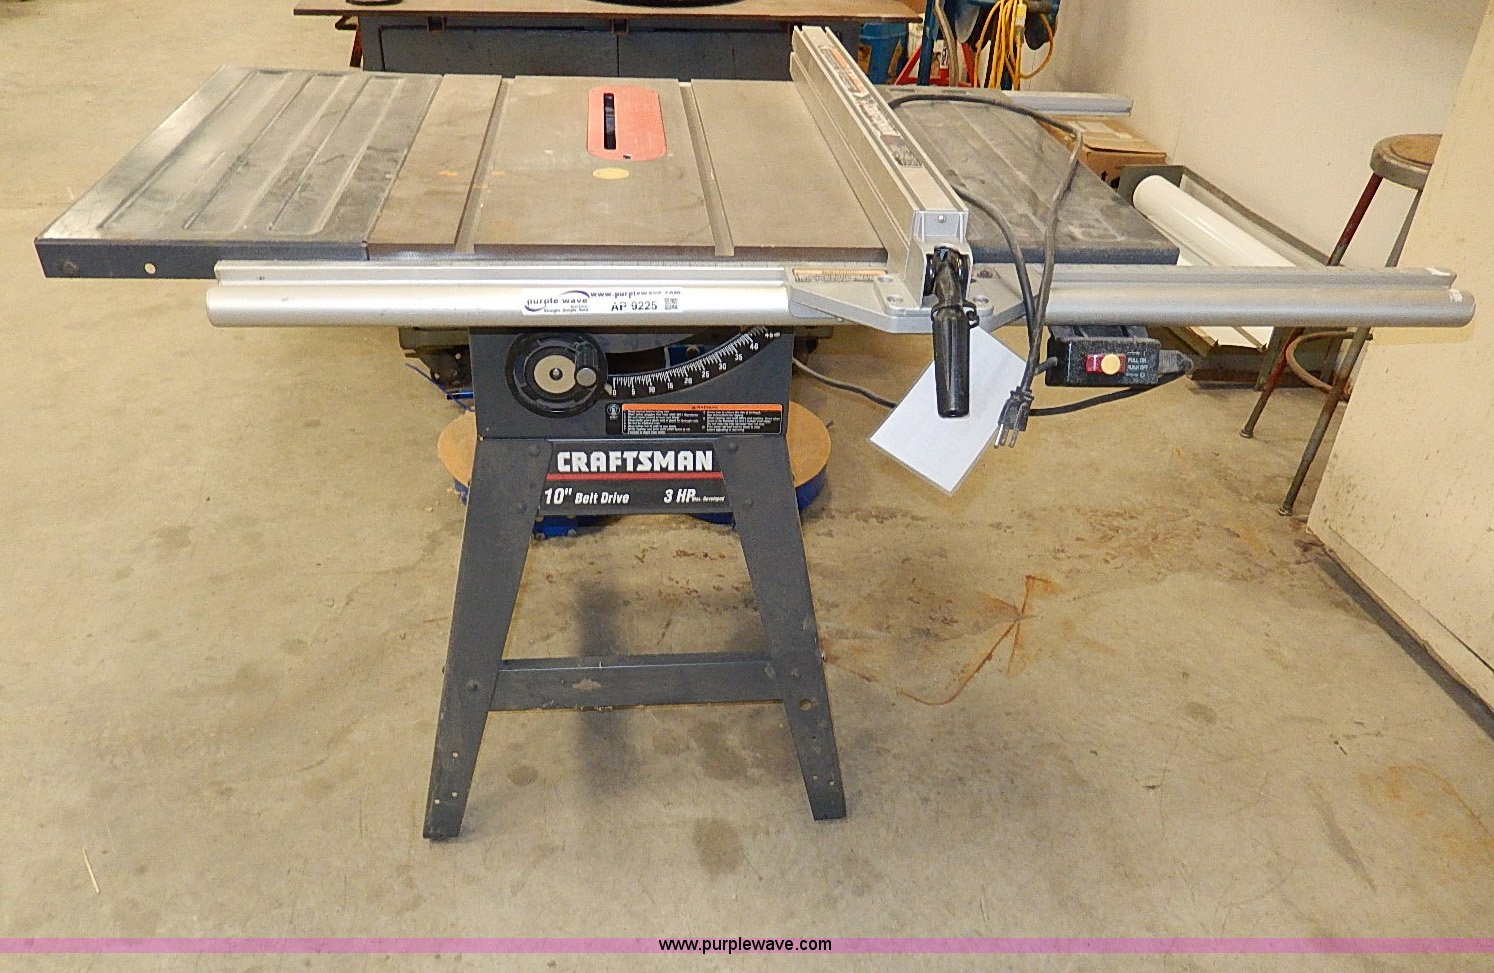 Craftsman 113299315 10 table saw item ap9225 sold ap9225 image for item ap9225 craftsman 113299315 10 table saw greentooth Image collections